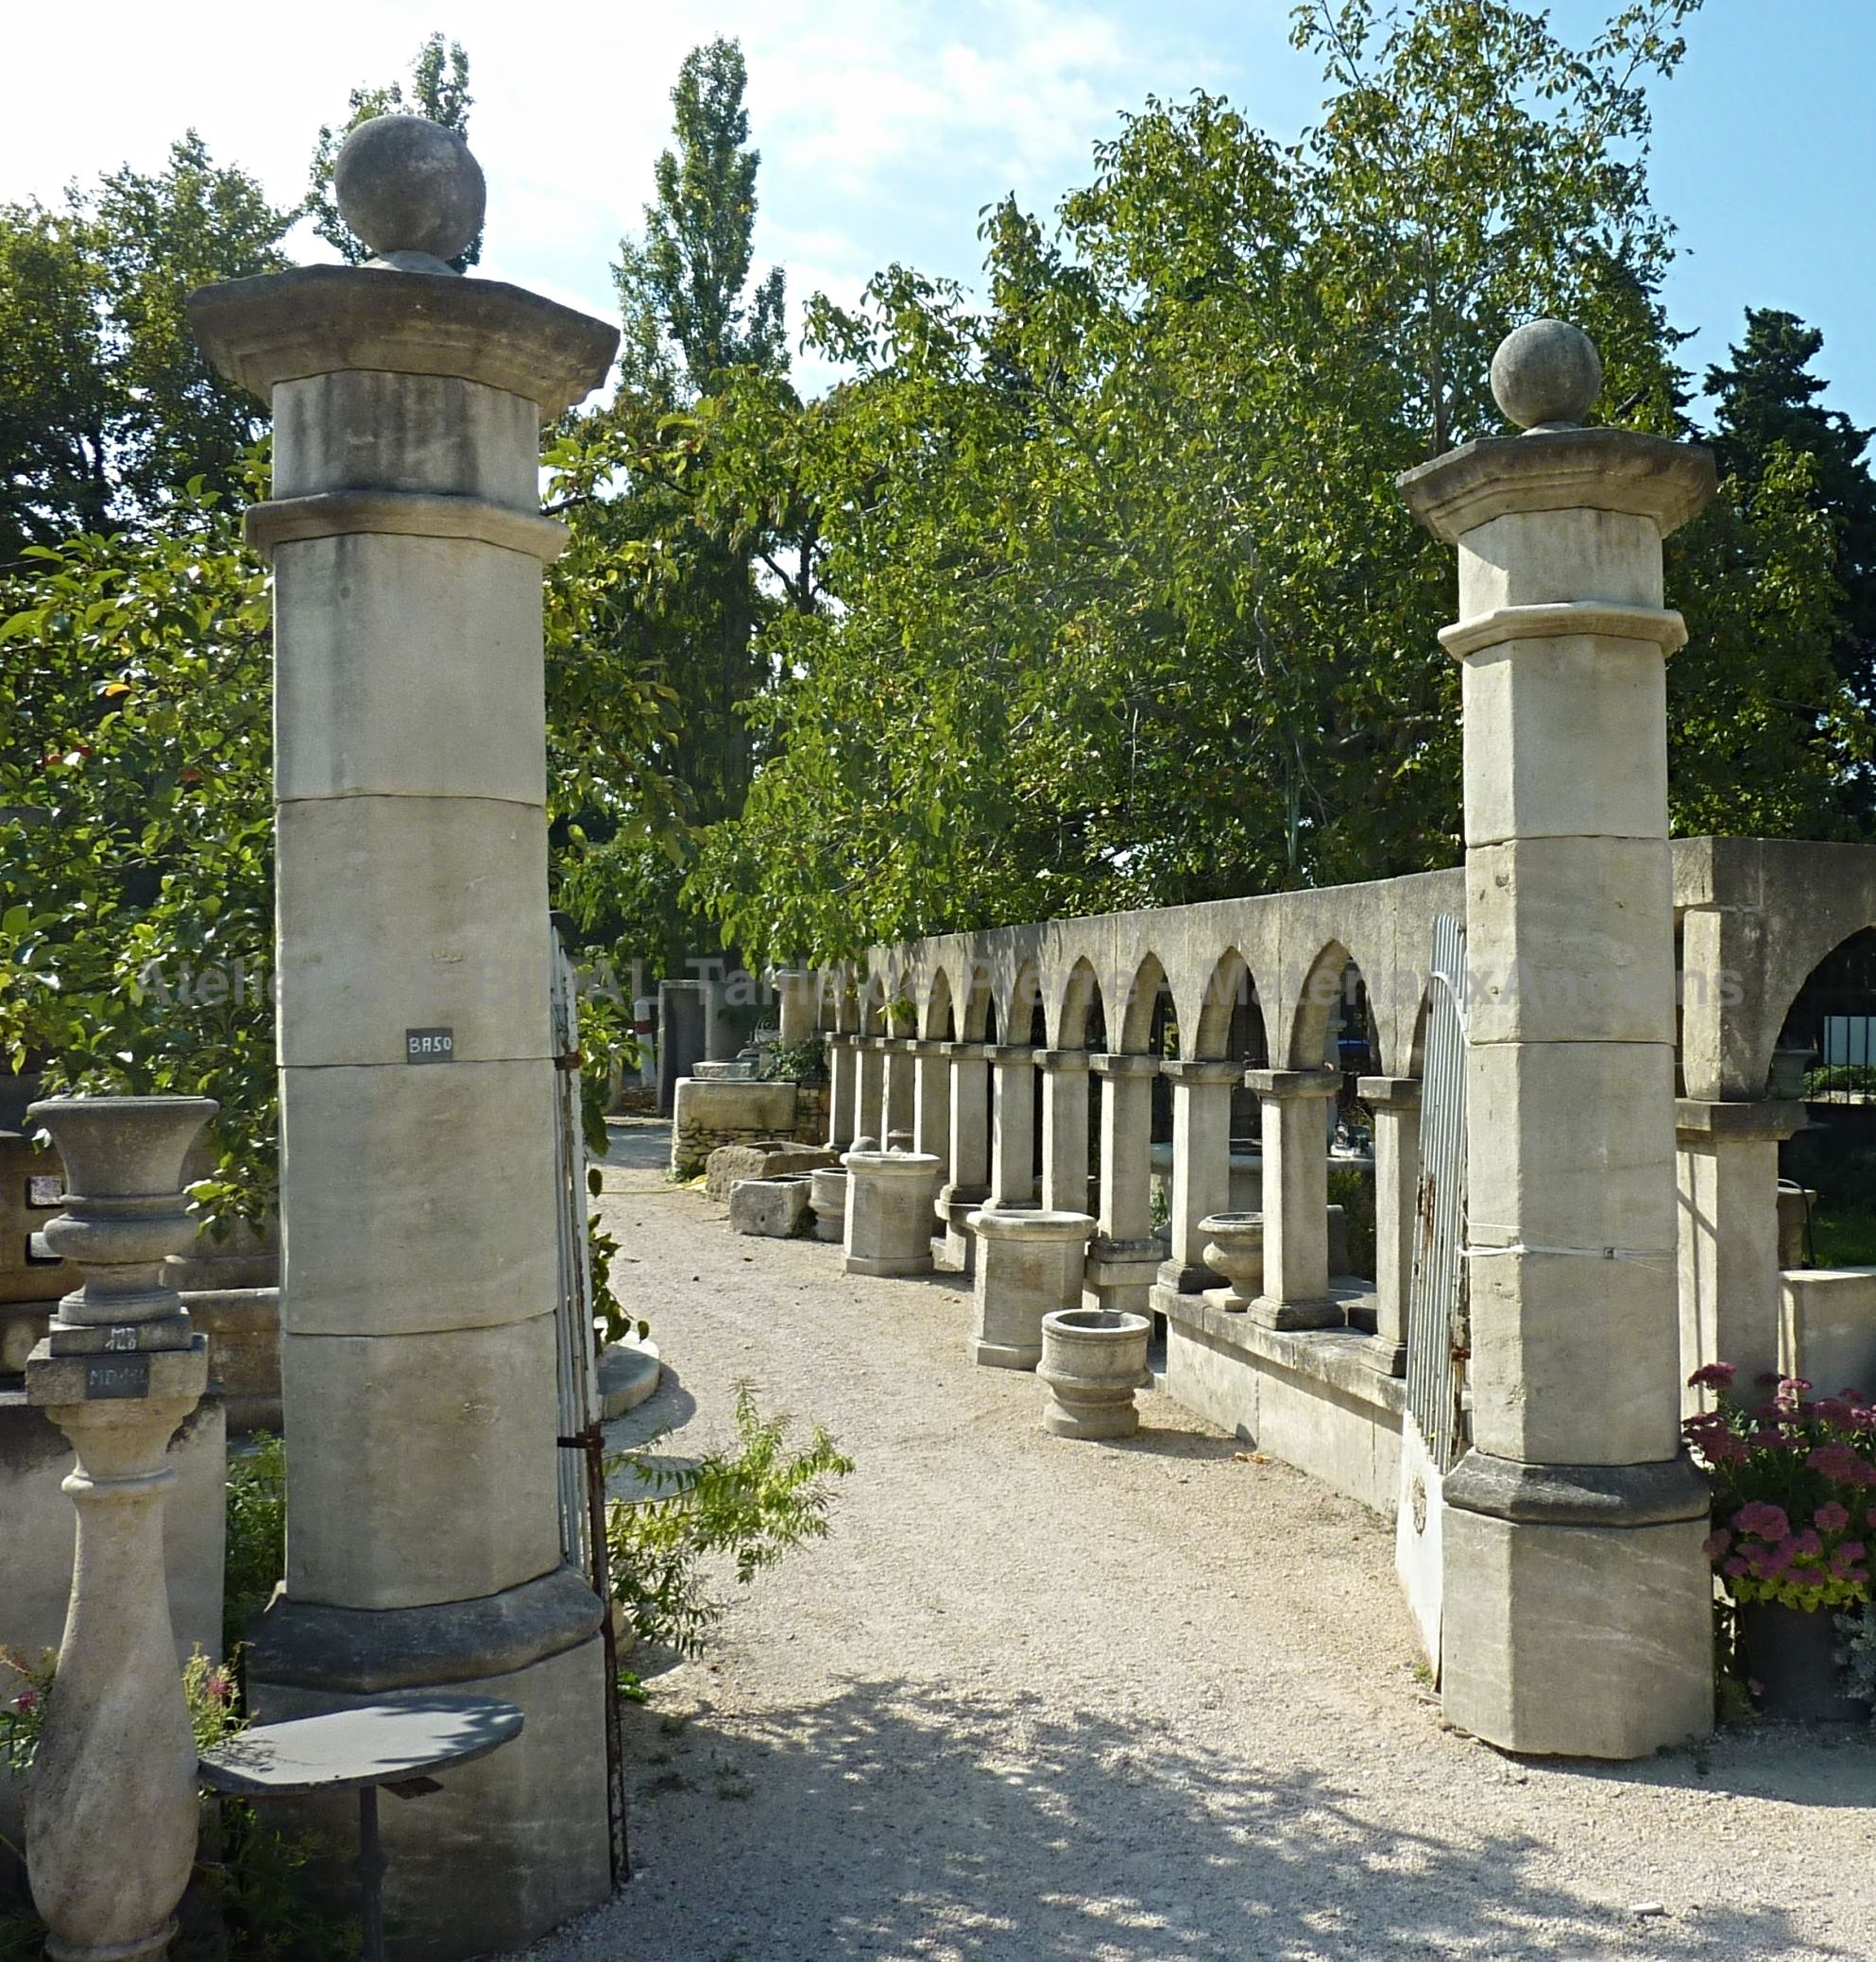 BA50 - Pair of octagonal pillars with capital decorated with a ball carved in French limestone